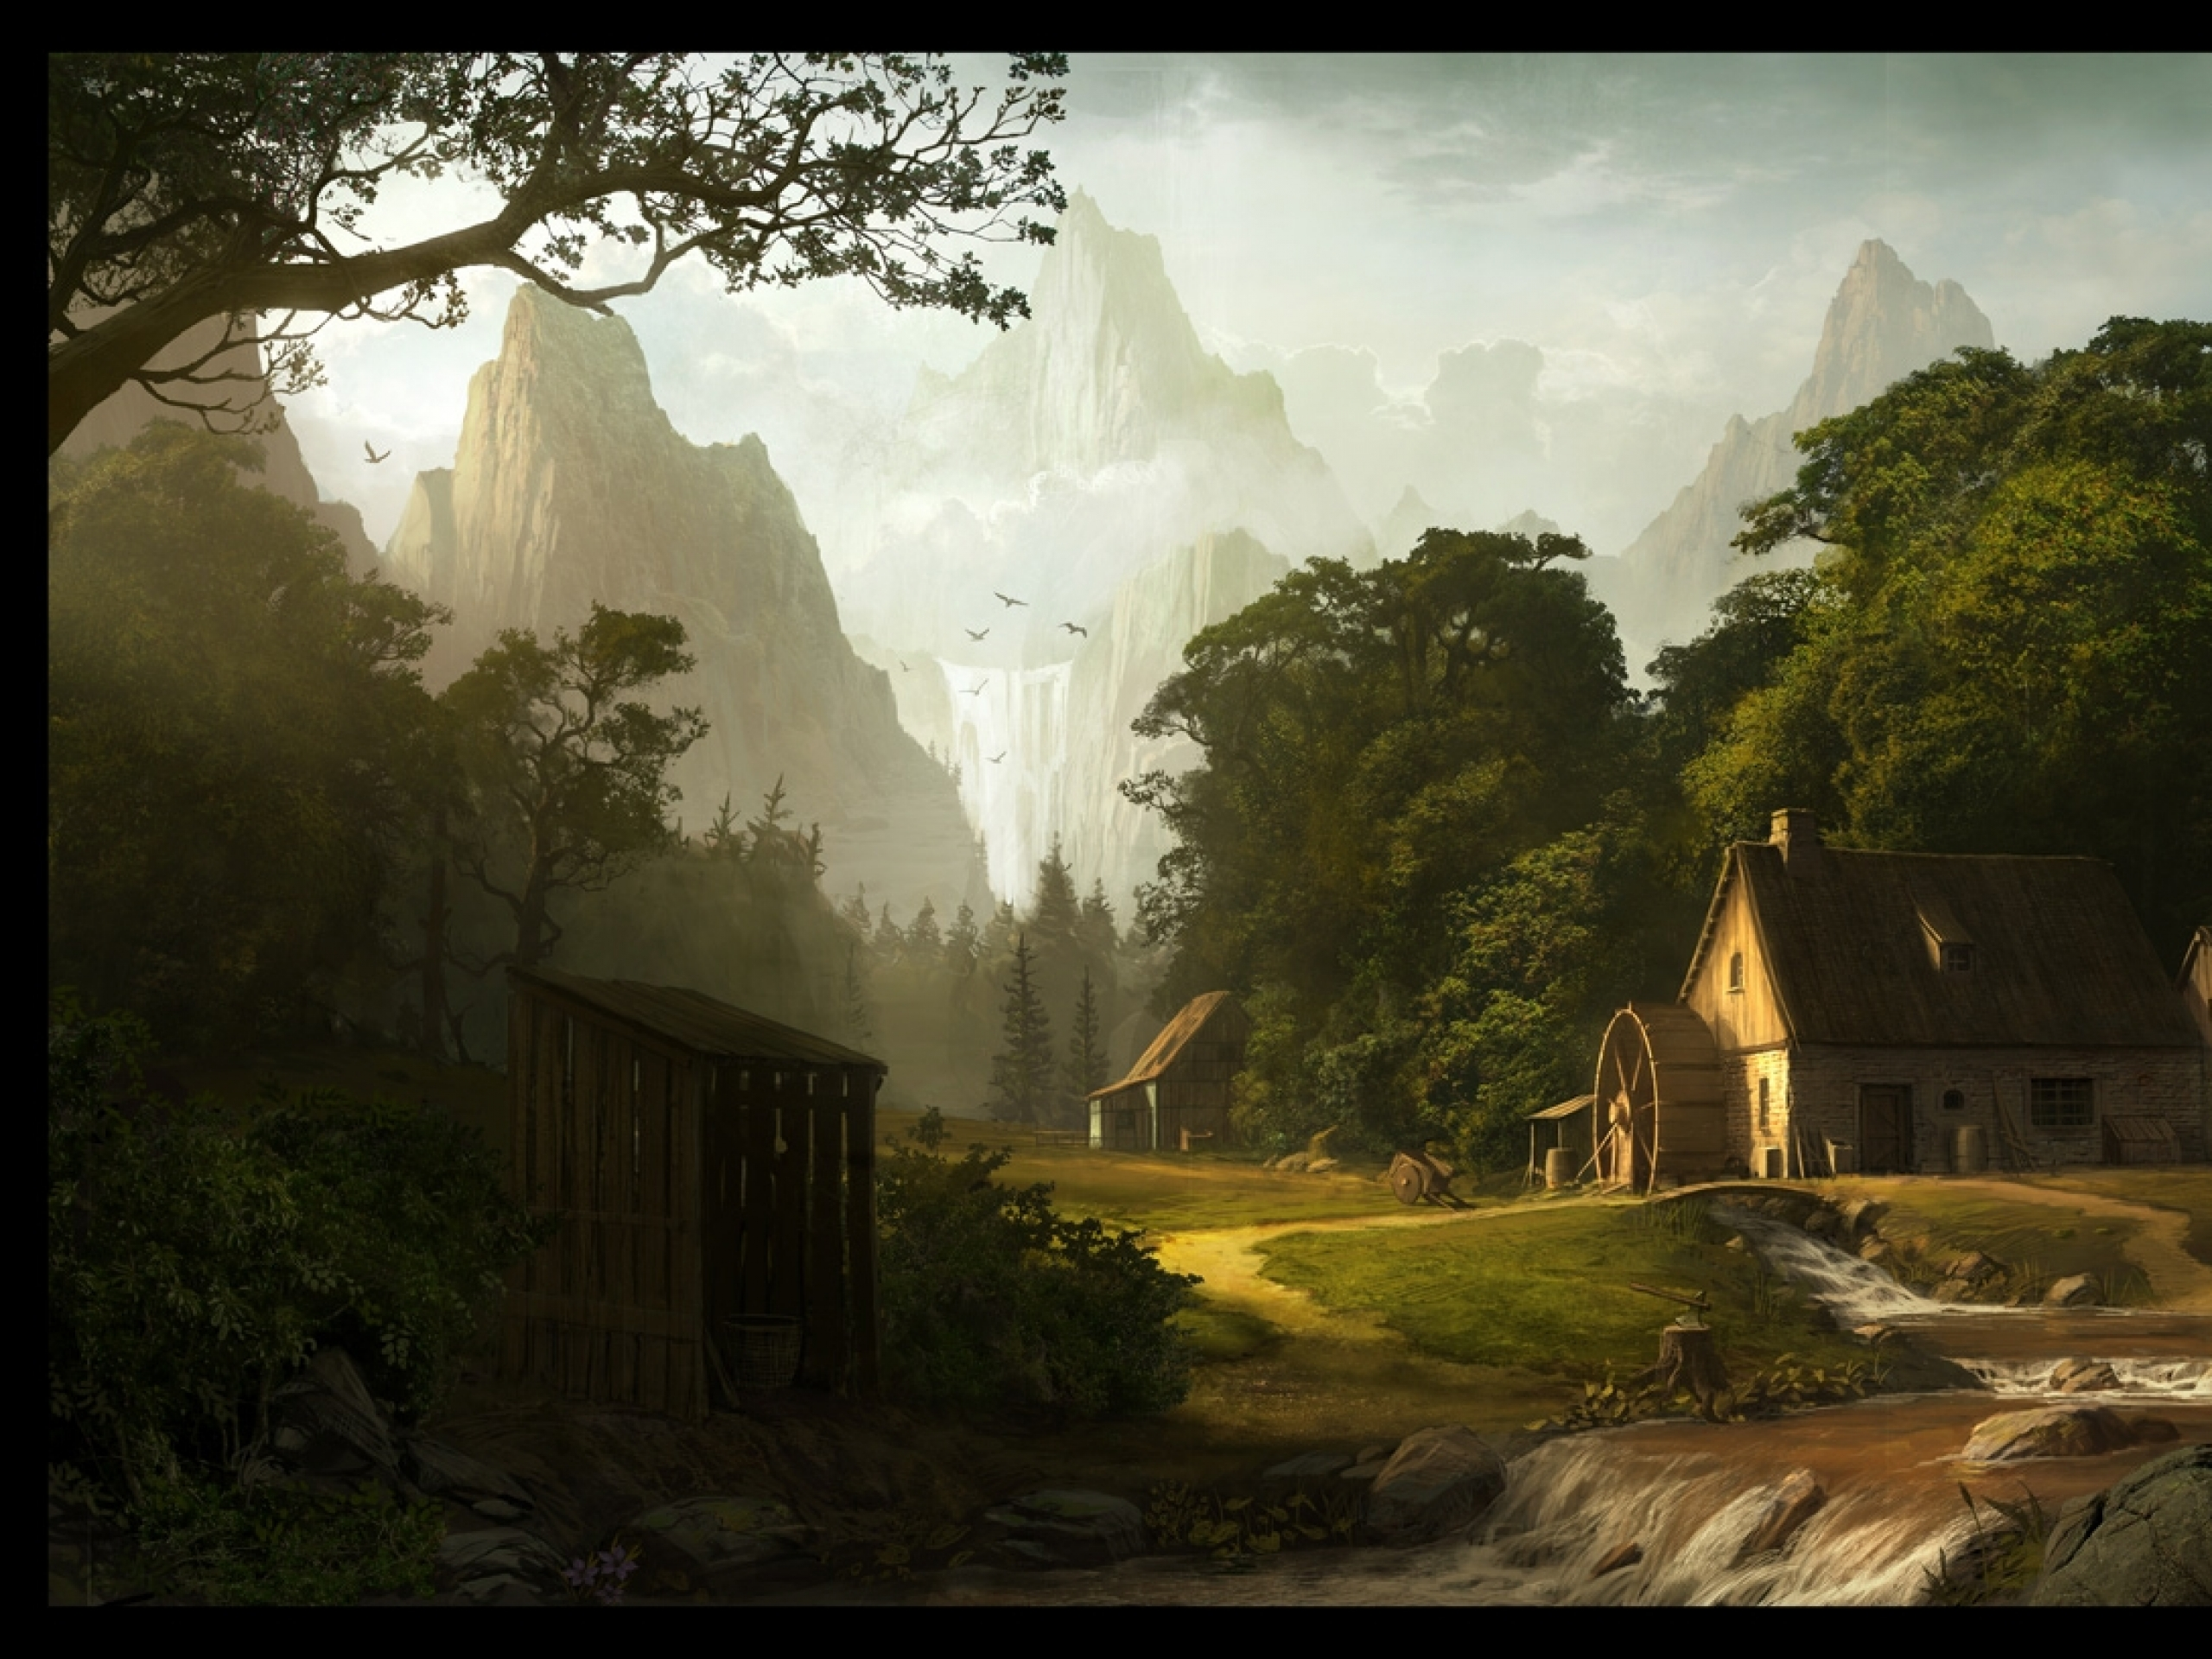 Animated Sunset Wallpaper Houses Mill Amp Scenery Artwork Wallpapers Houses Mill